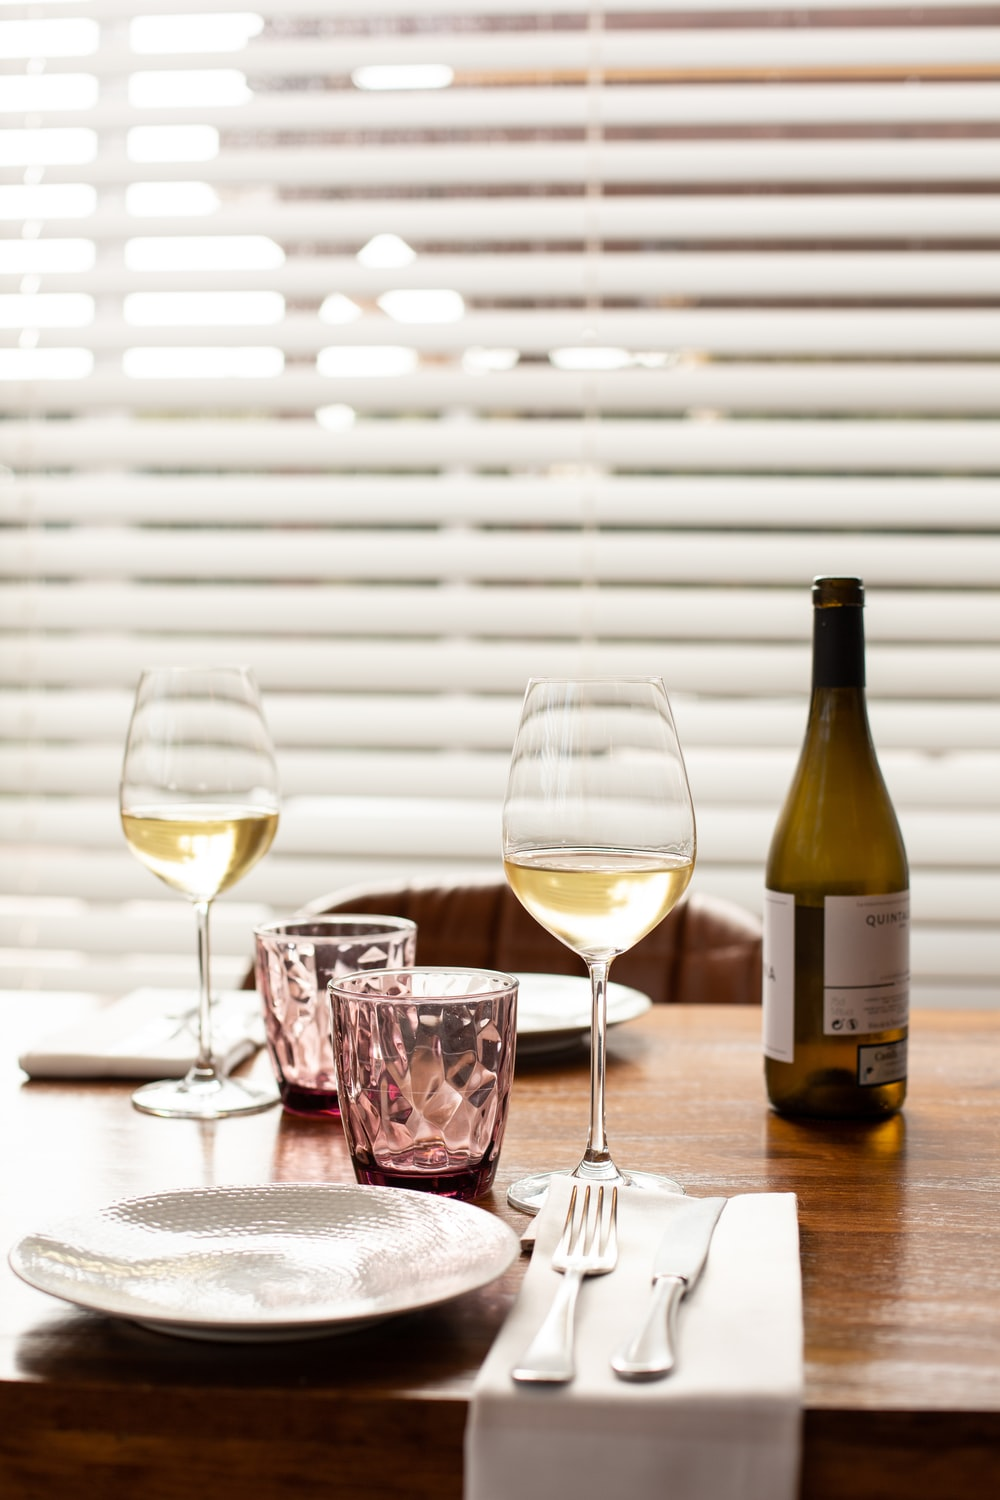 clear wine glass beside wine bottle on table